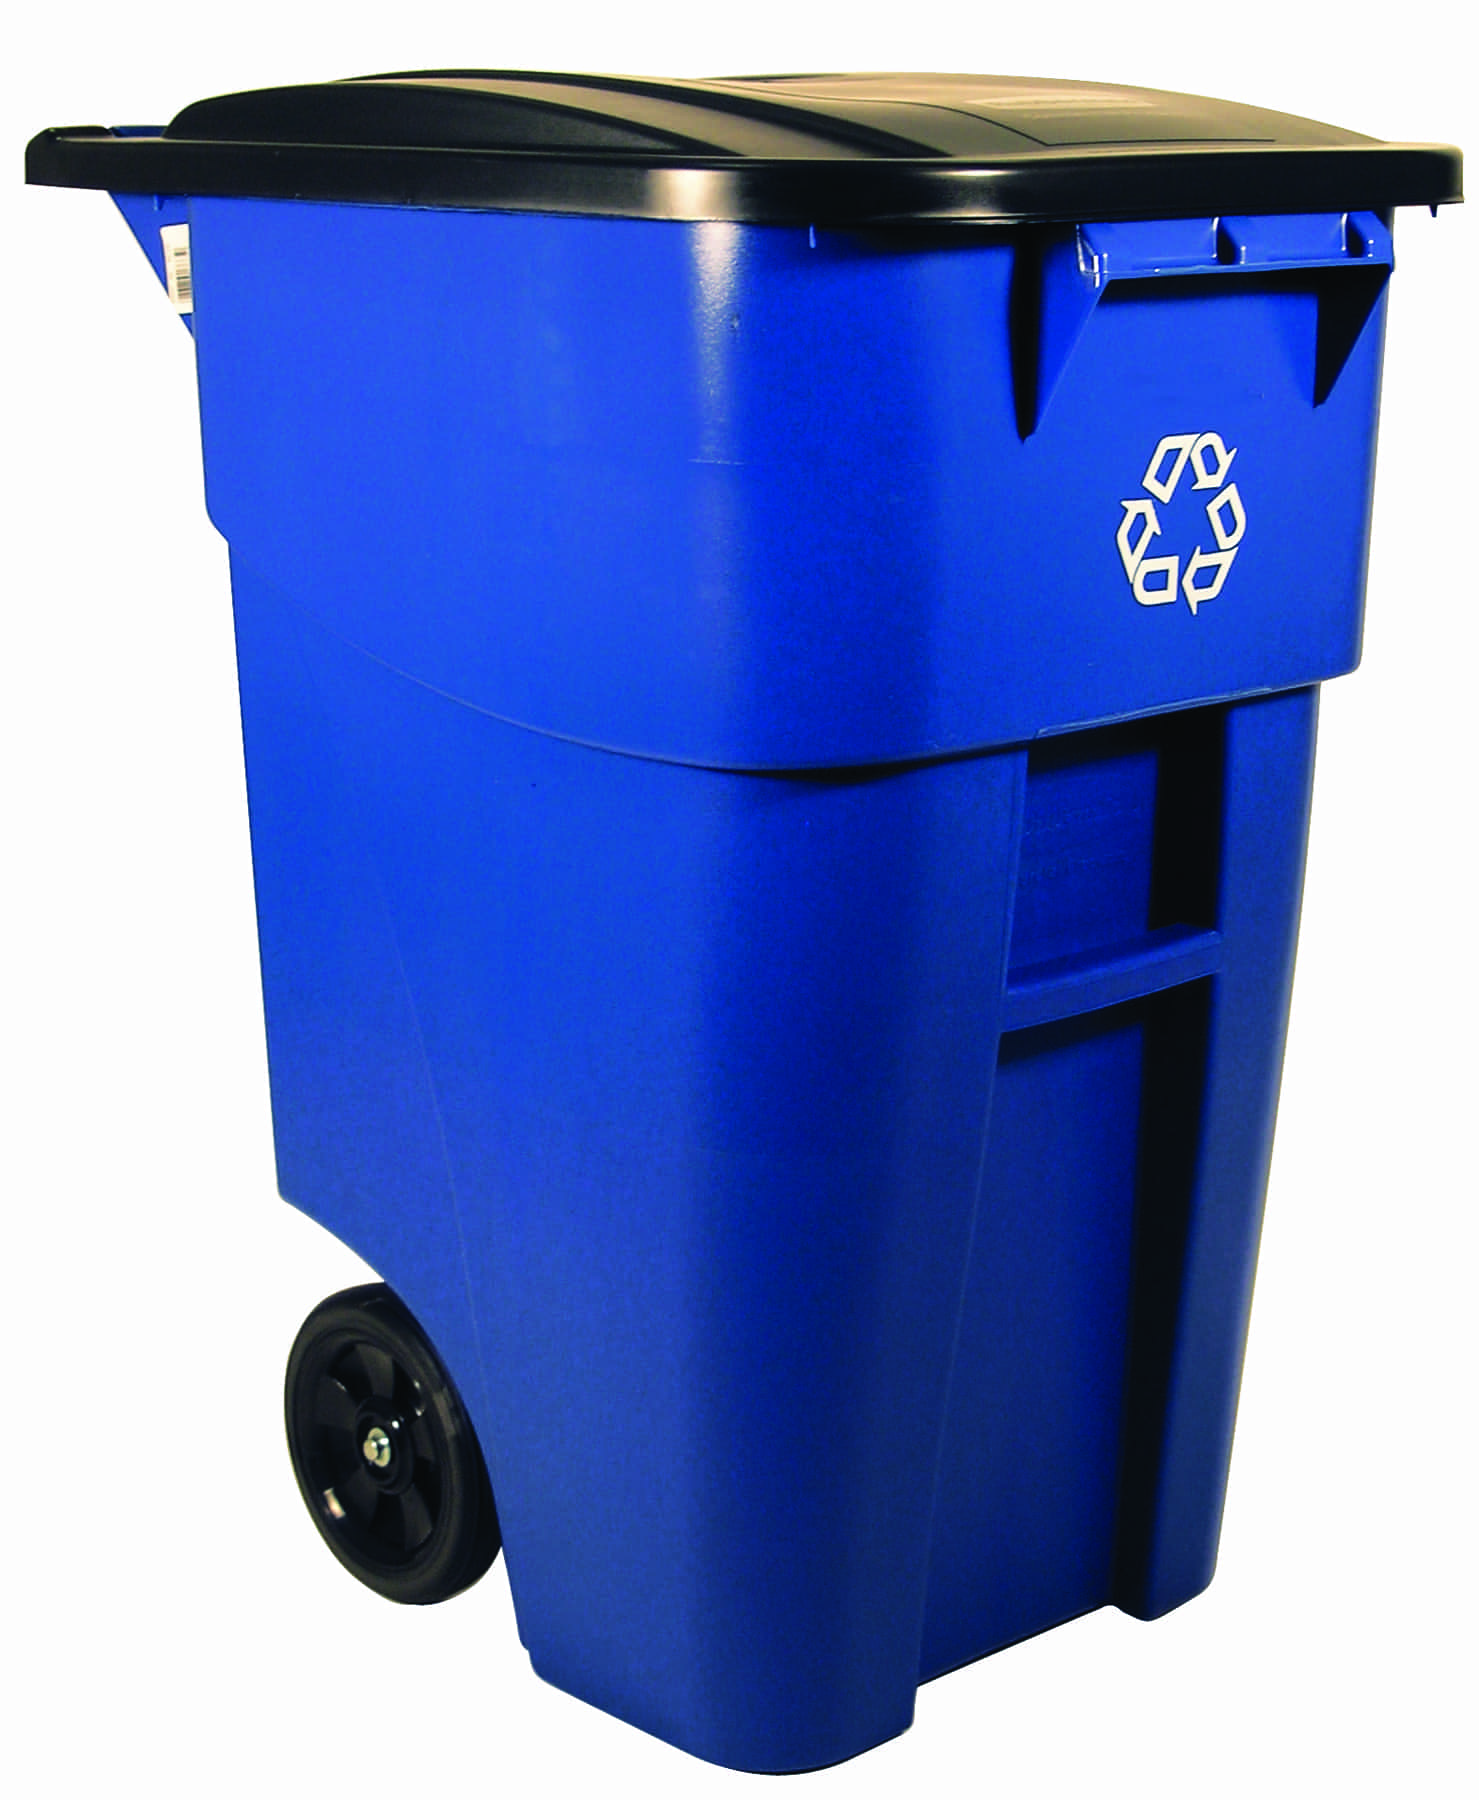 50 gallon brute recycling rollout container with lid for sale 9w27 73 recycle away - Home depot recycling containers ...